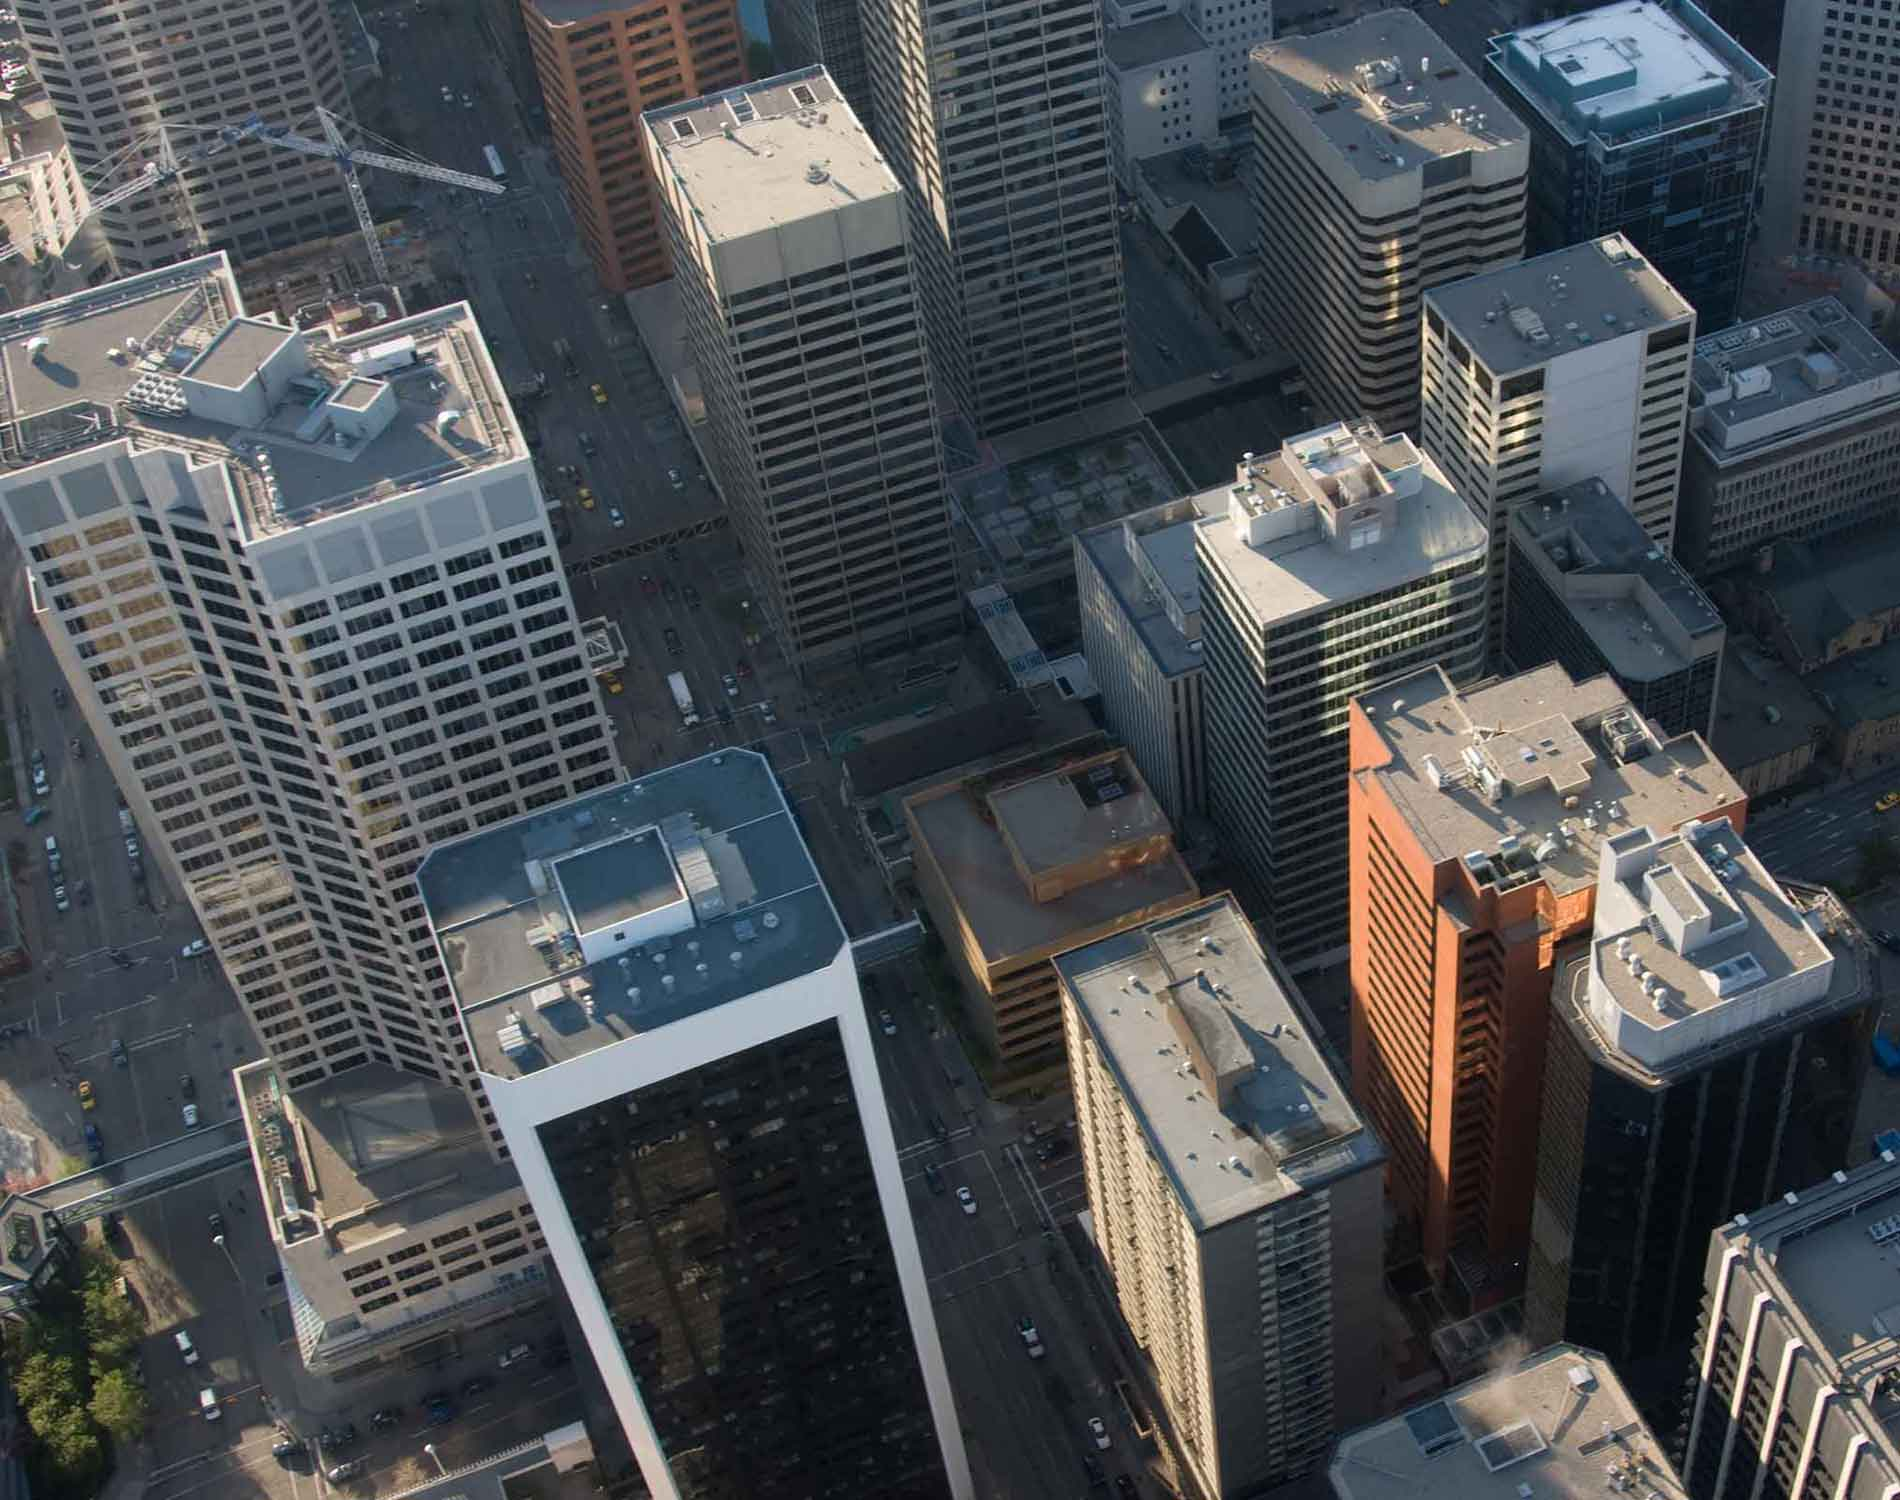 Arial view of skyscrapers